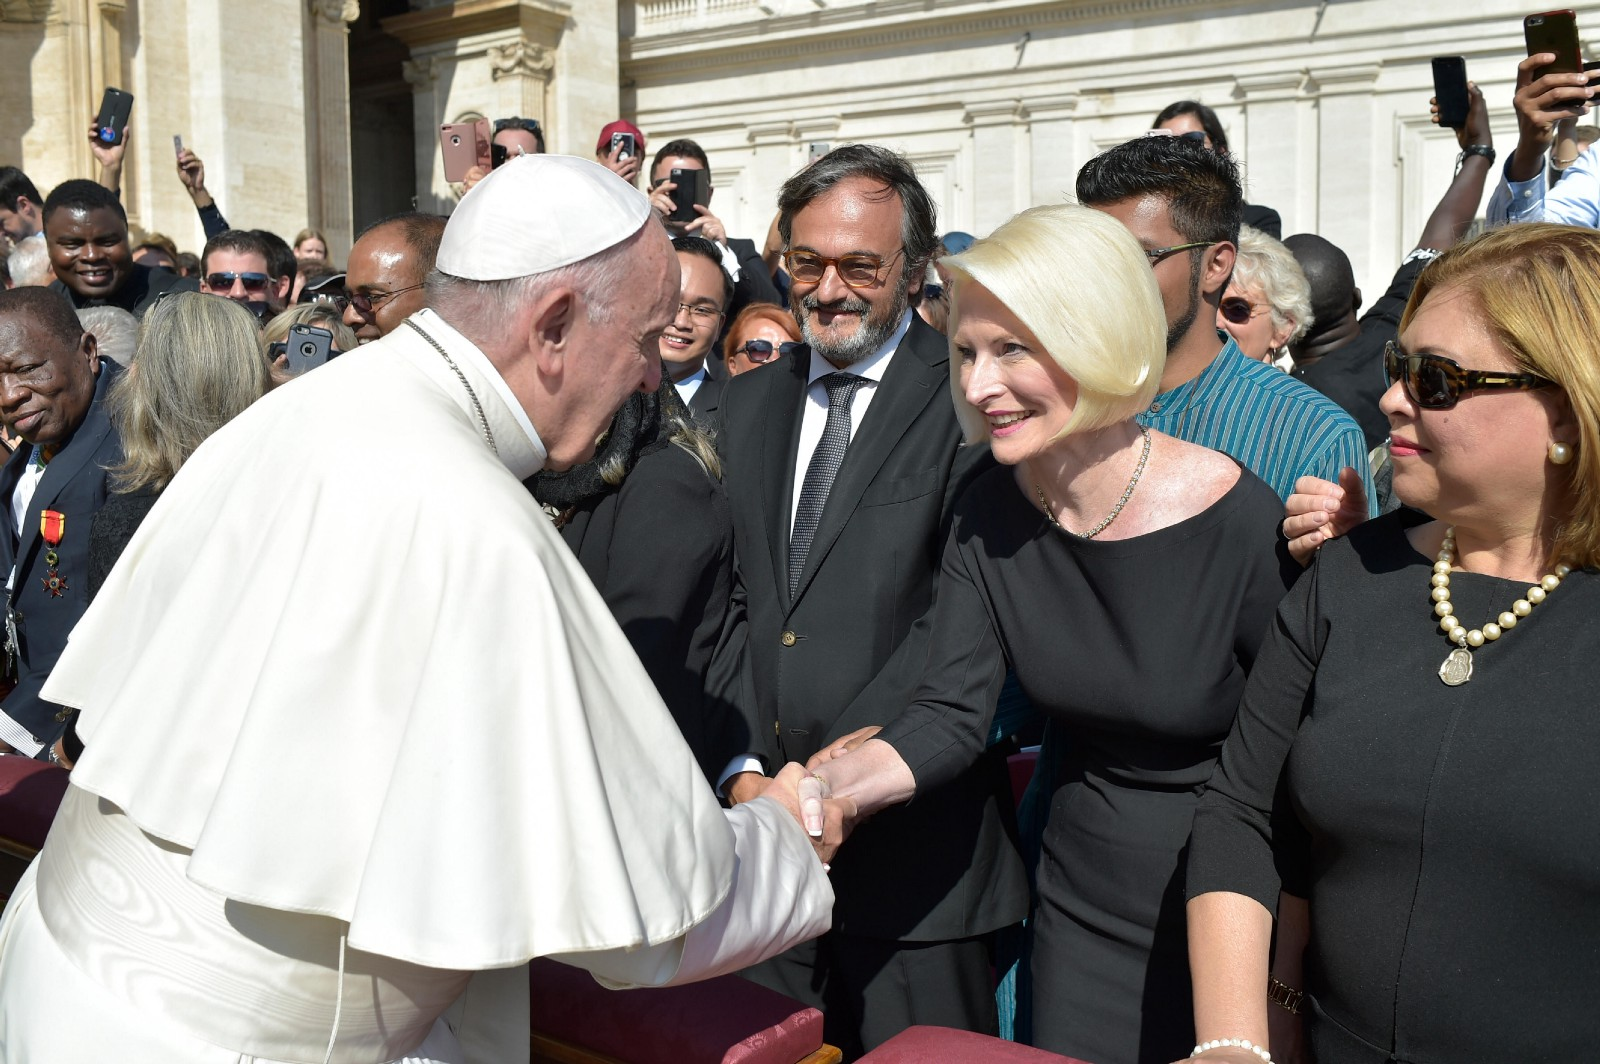 Pope Francis greets U.S. Ambassador to the Holy See Callista Gingrich in St. Peter's Square, October 3, 2018, during the Opening Mass for the 2018 Synod of Bishops.